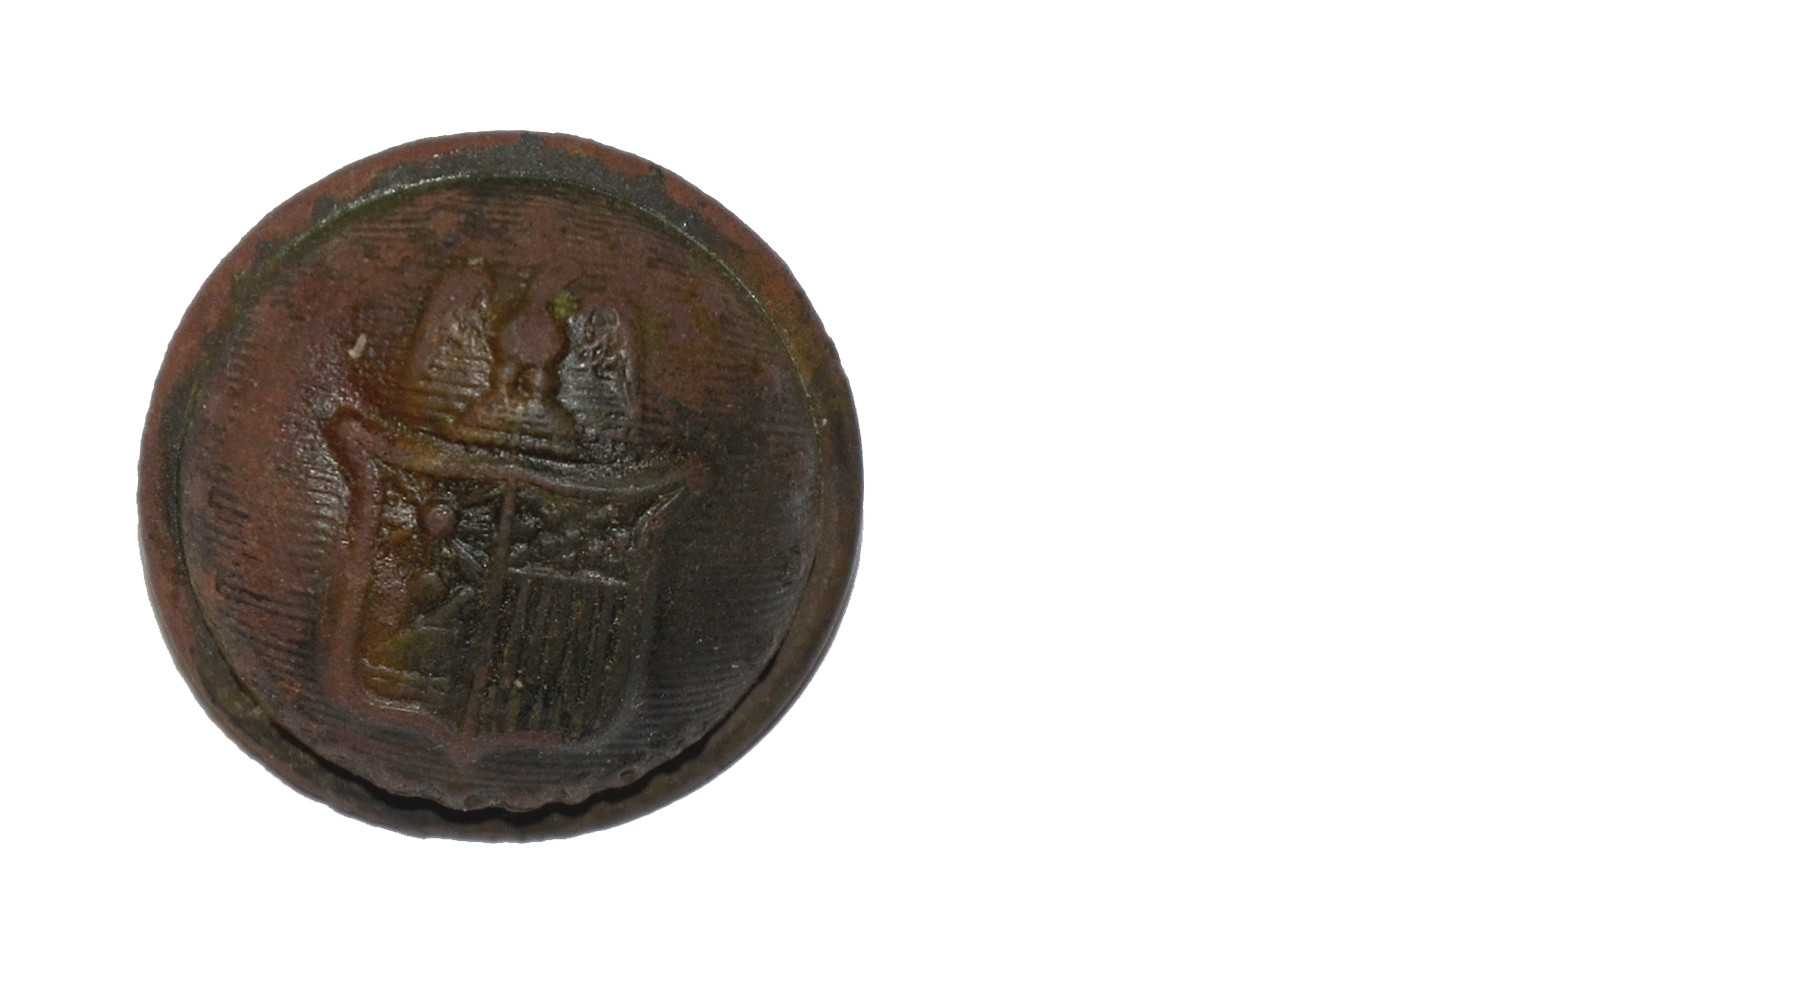 NEW YORK STATE COAT BUTTON RECOVERED ON LITTLE ROUND TOP, GETTYSBURG